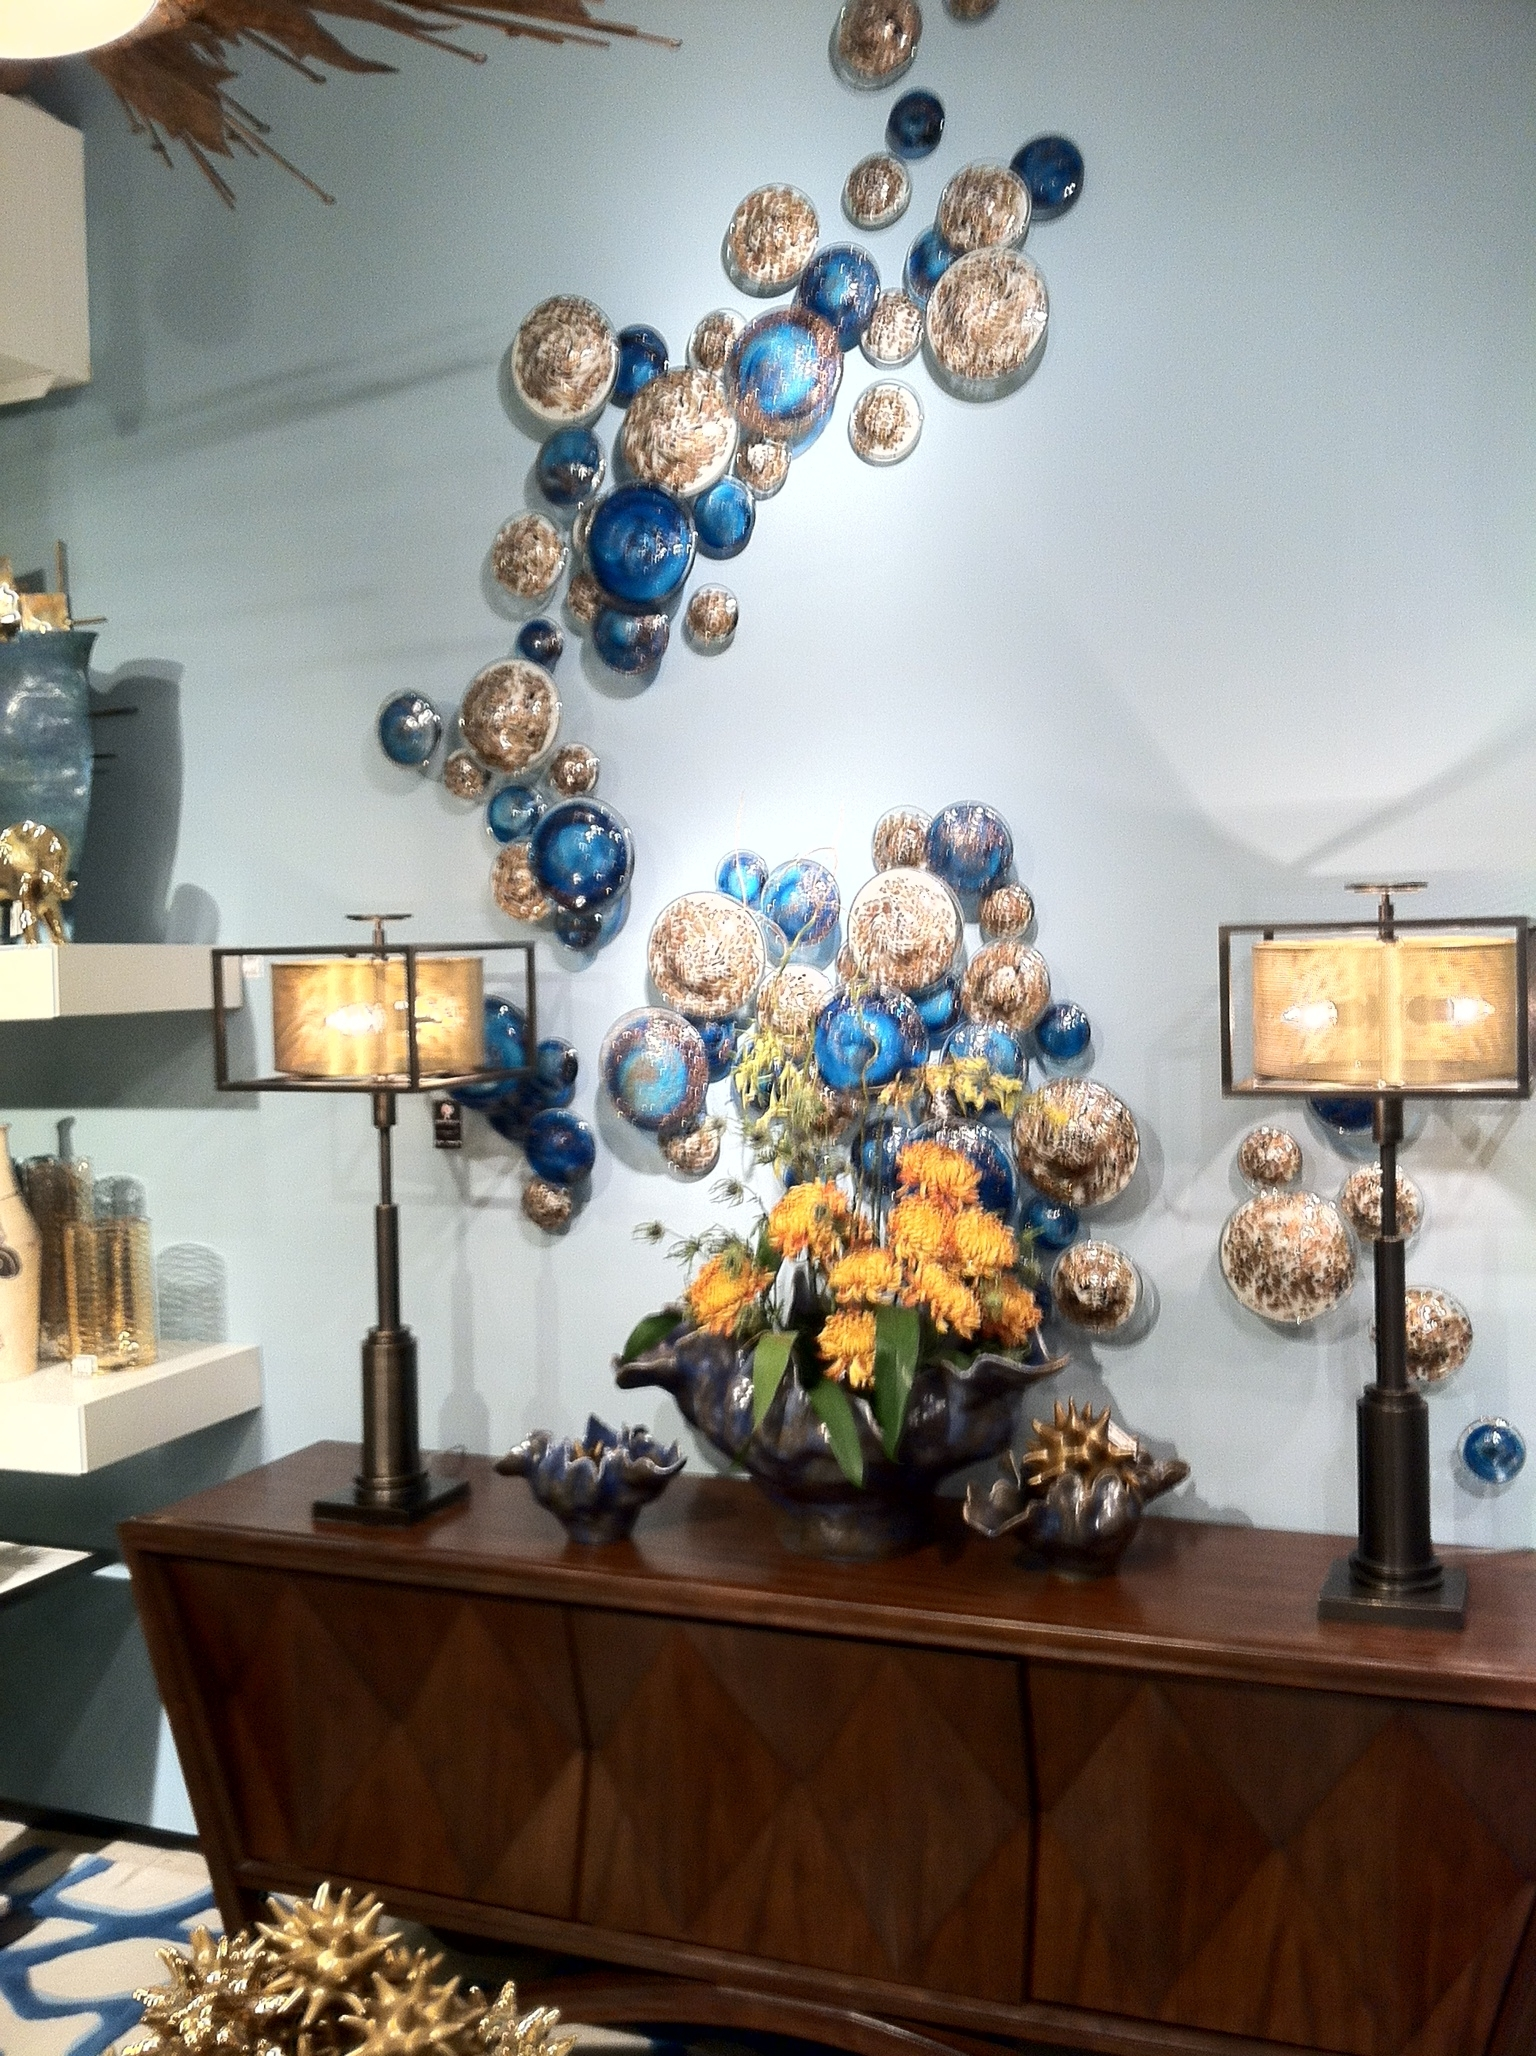 2018 Glass Wall Artworks Within A Fanciful Wall Display Featuring Blown Glass Mushrooms From (View 2 of 15)